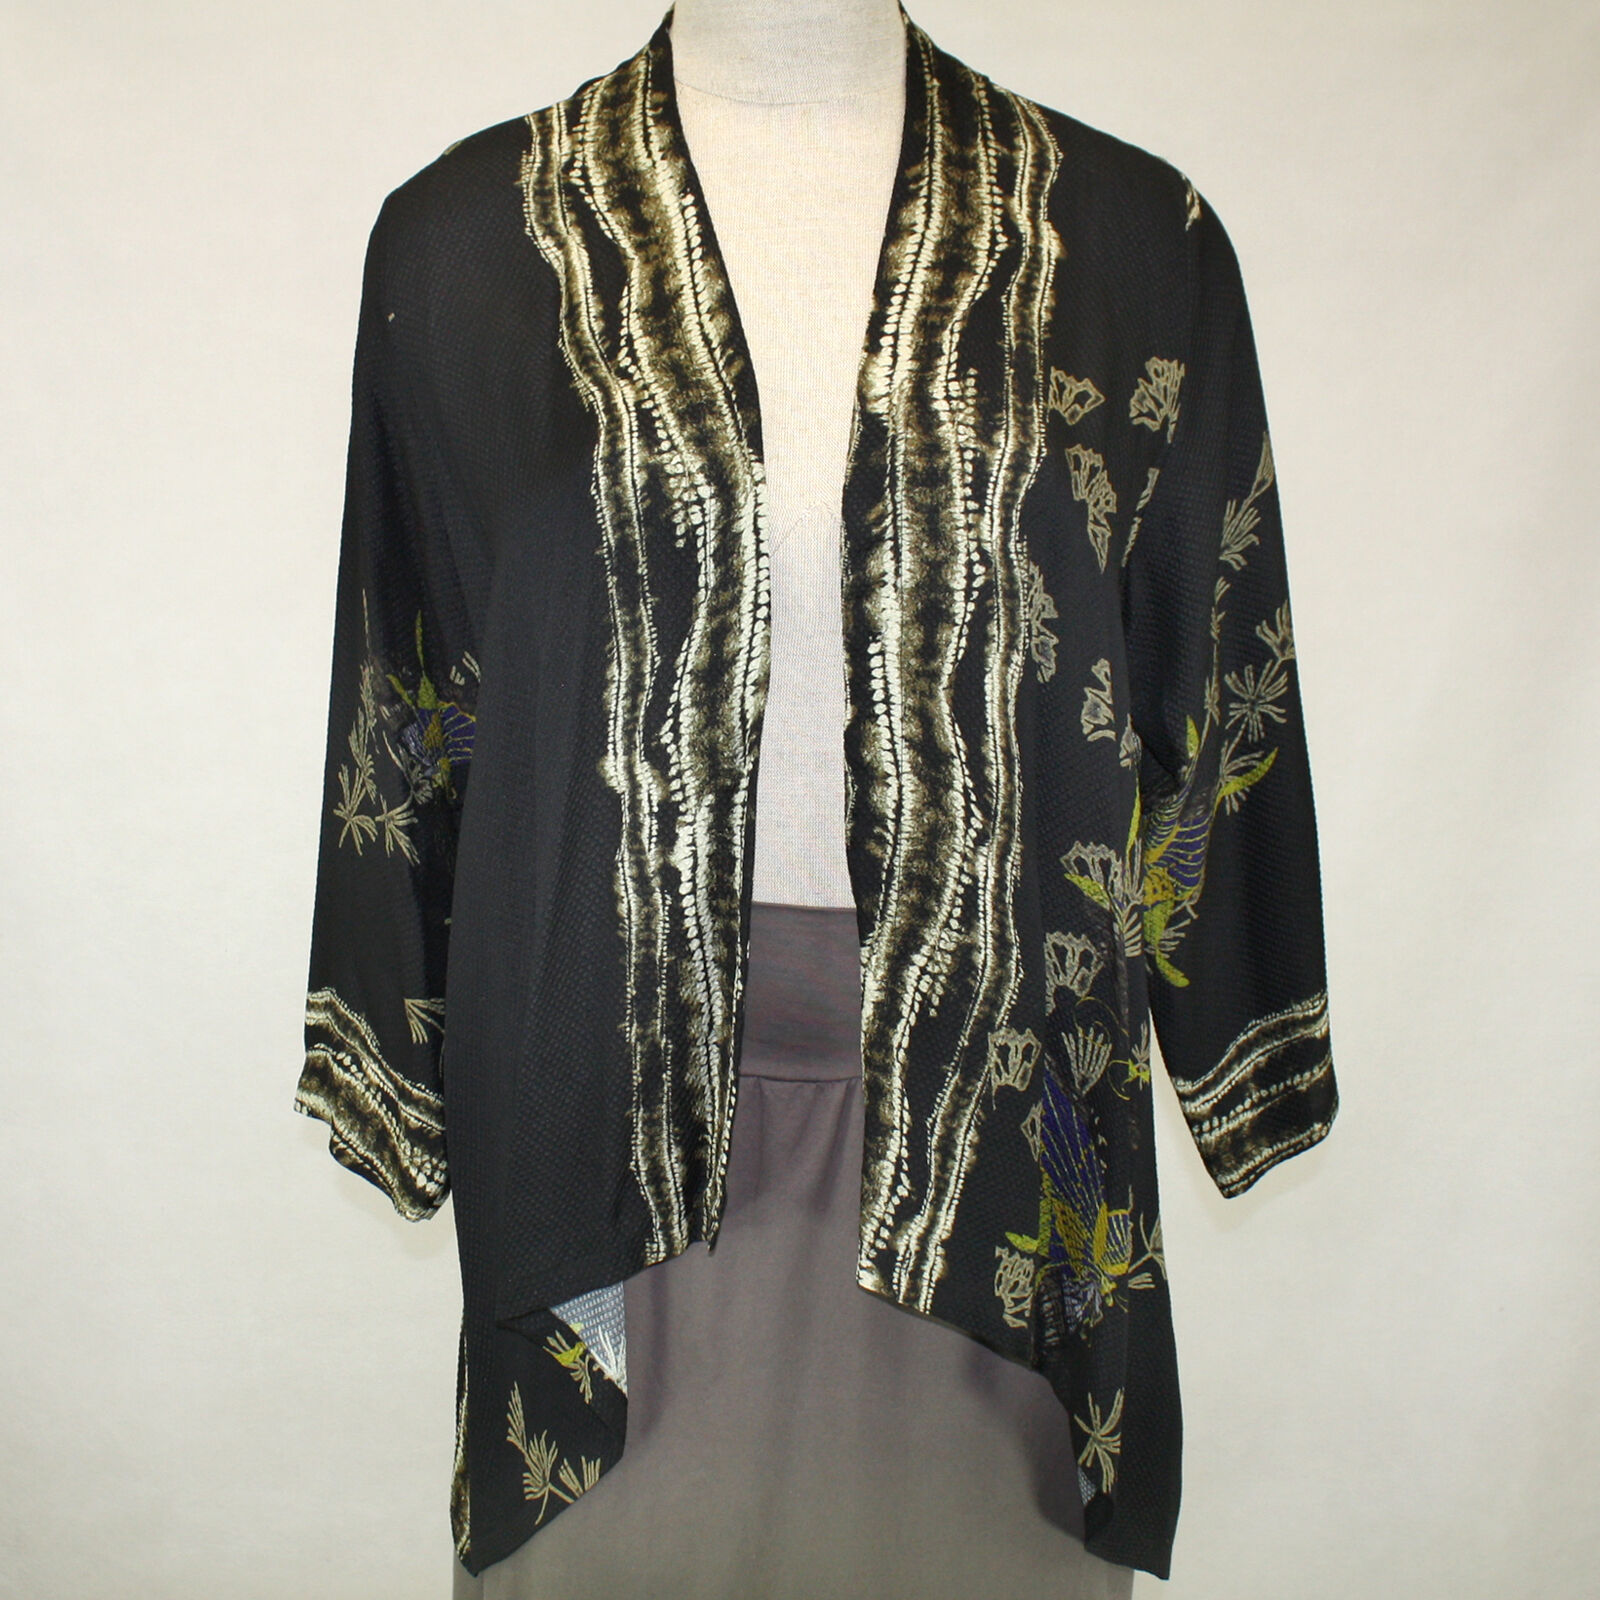 Citron Clothing Art To Wear Whimsical Butterfly 100%Silk Cardigan Blouse Plus 2X